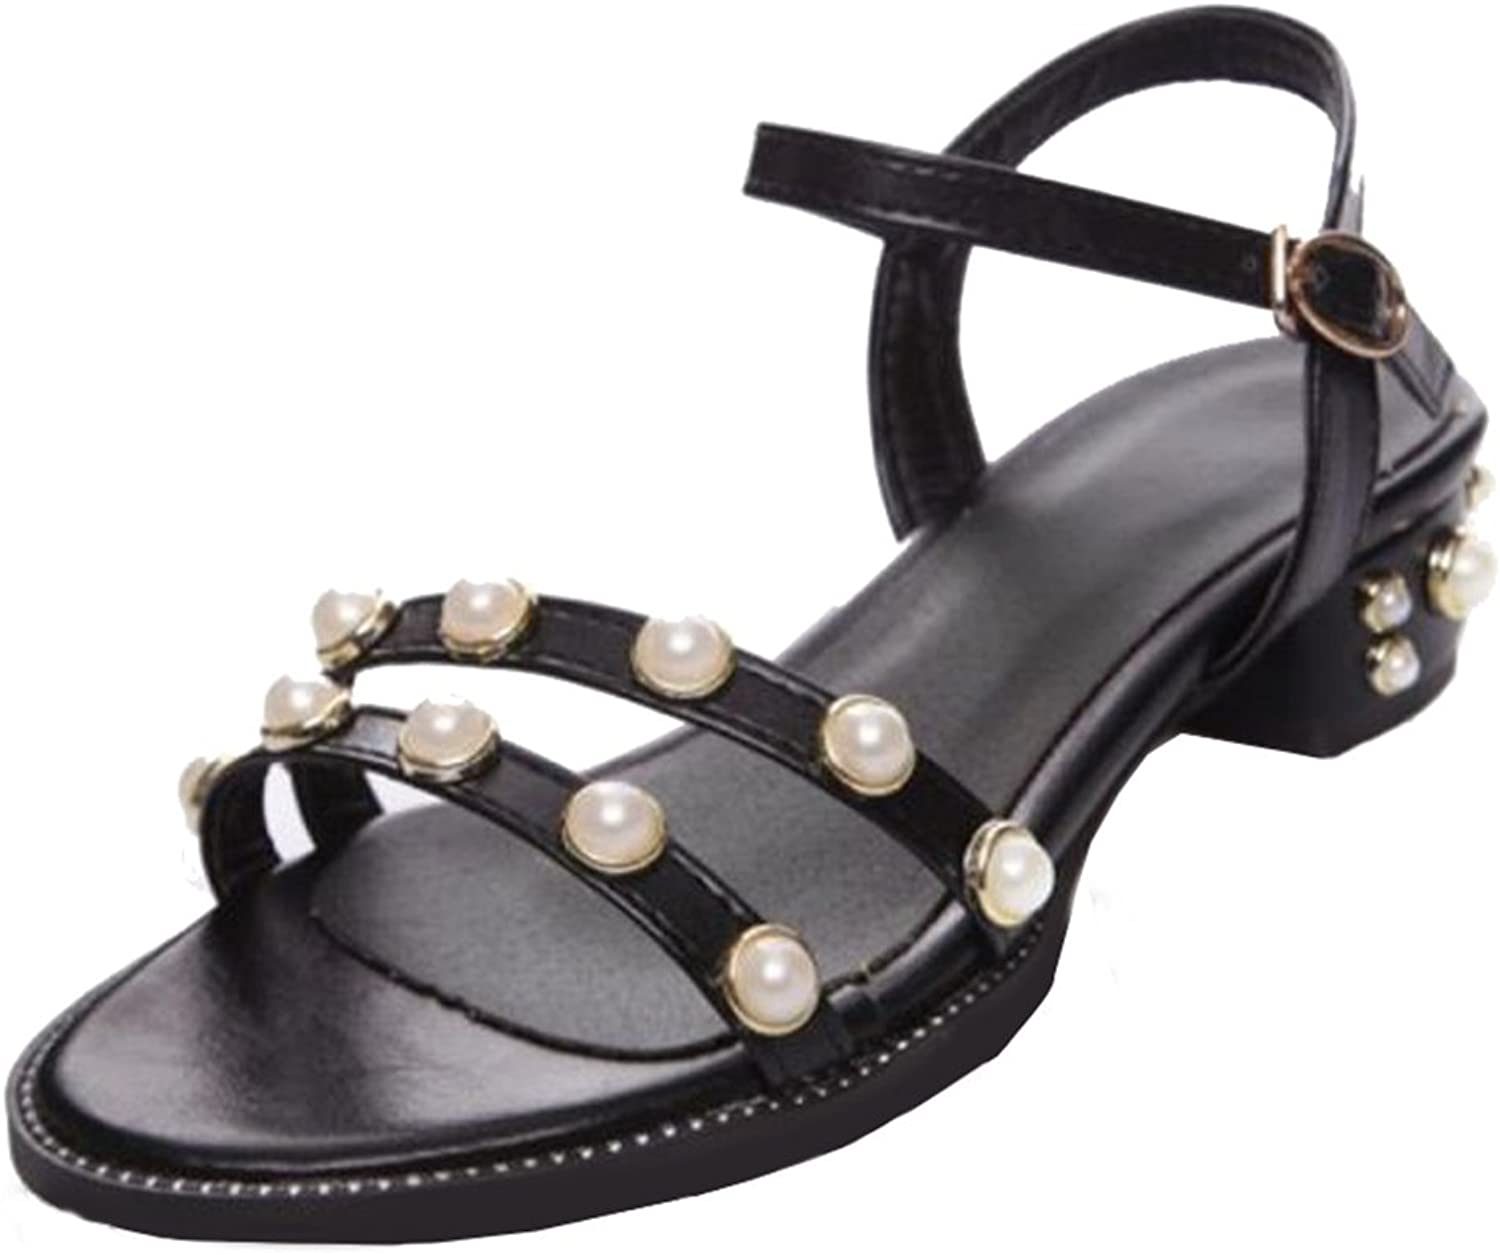 Cocey Women Casual Sandals with Chunky Heel and Simple Designed